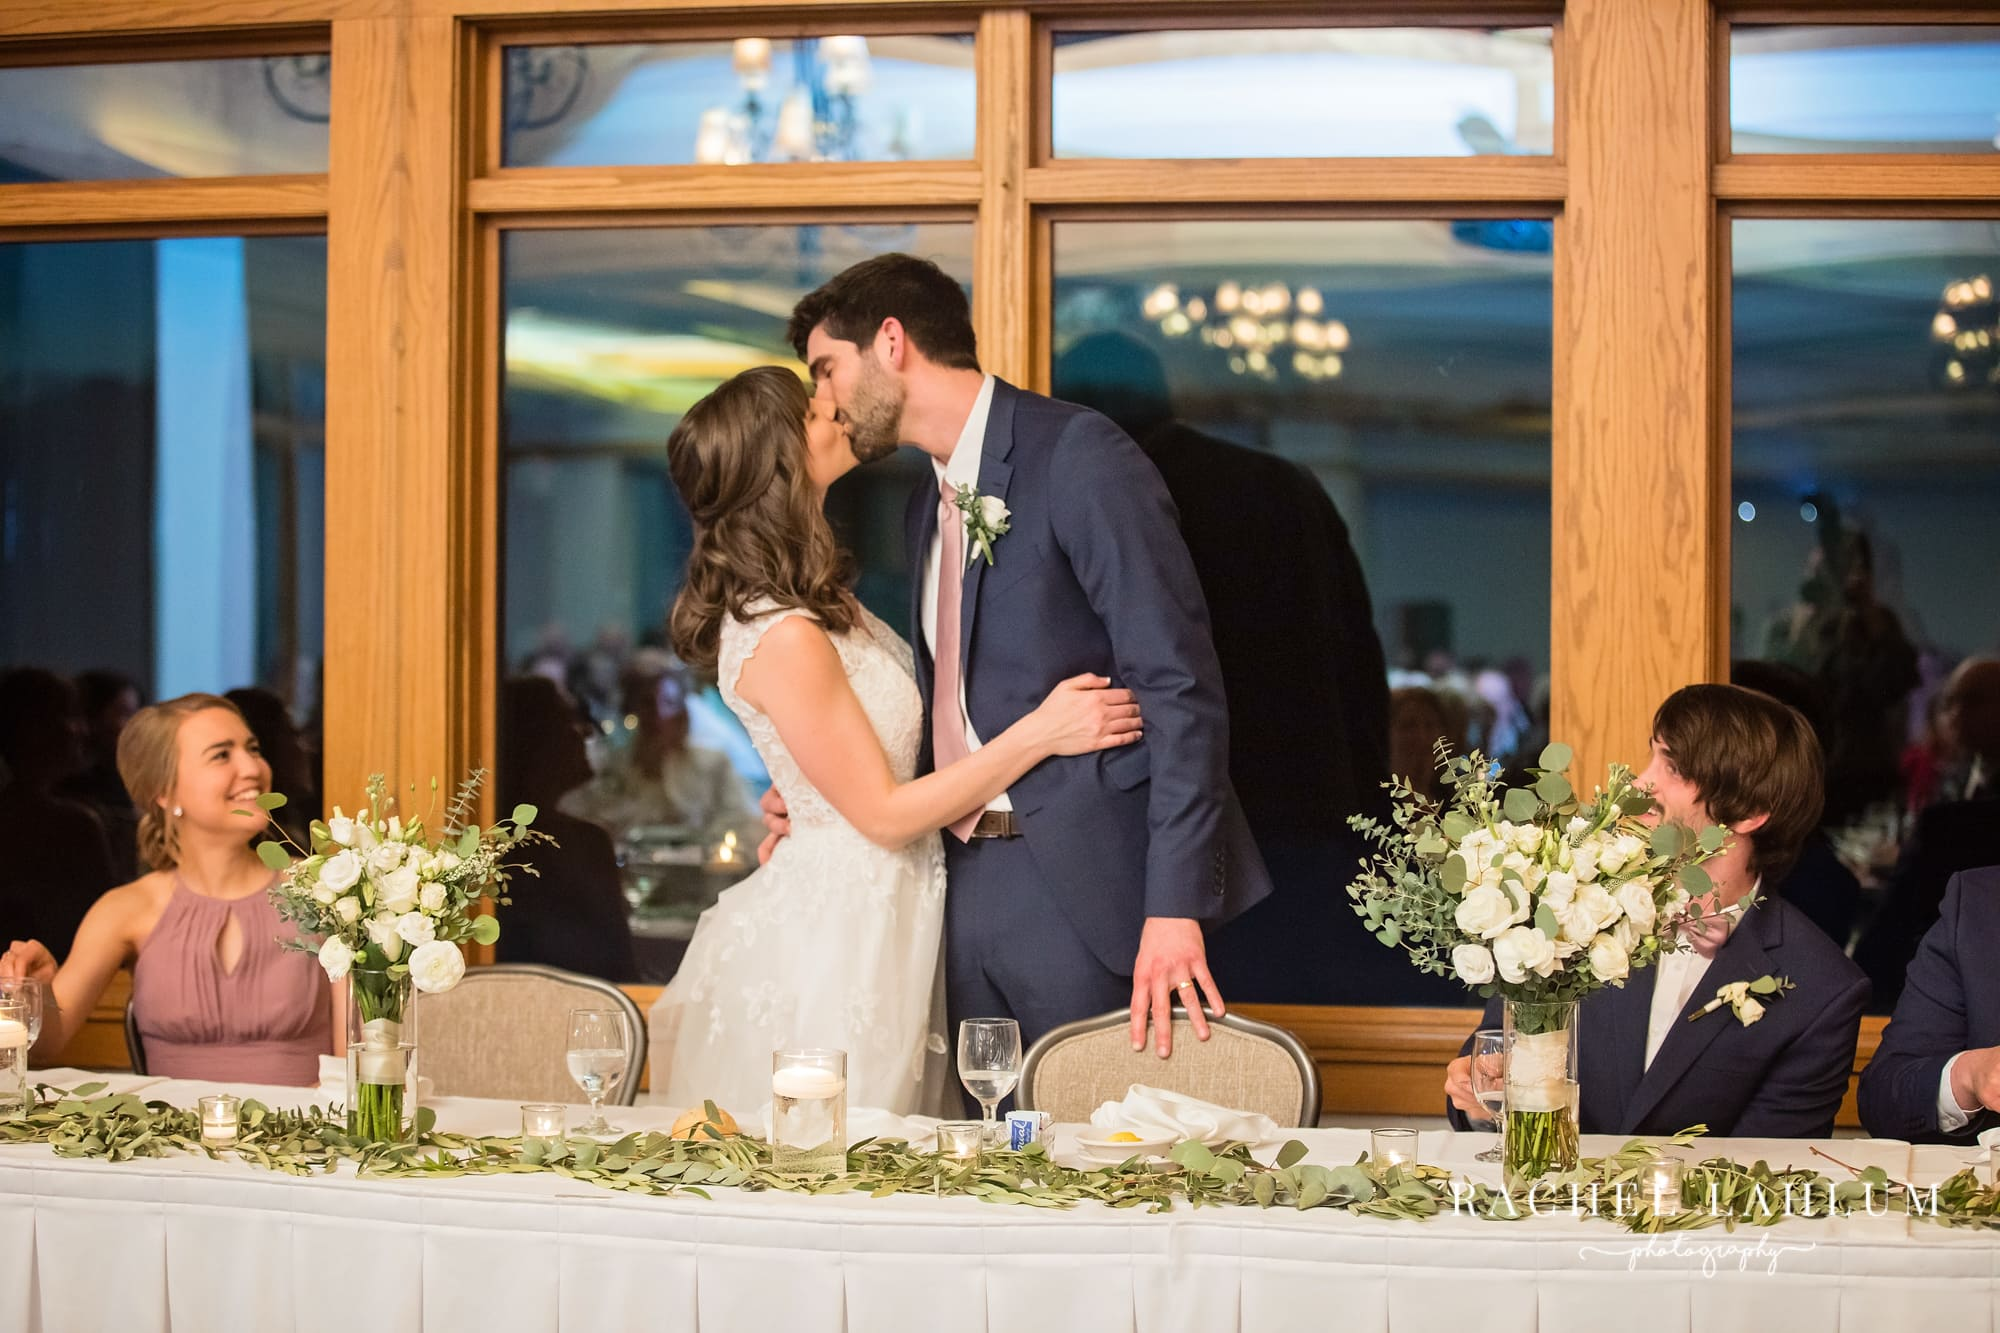 Bride and groom kiss during reception at Mendakota Country Club in St. Paul Minnesota.